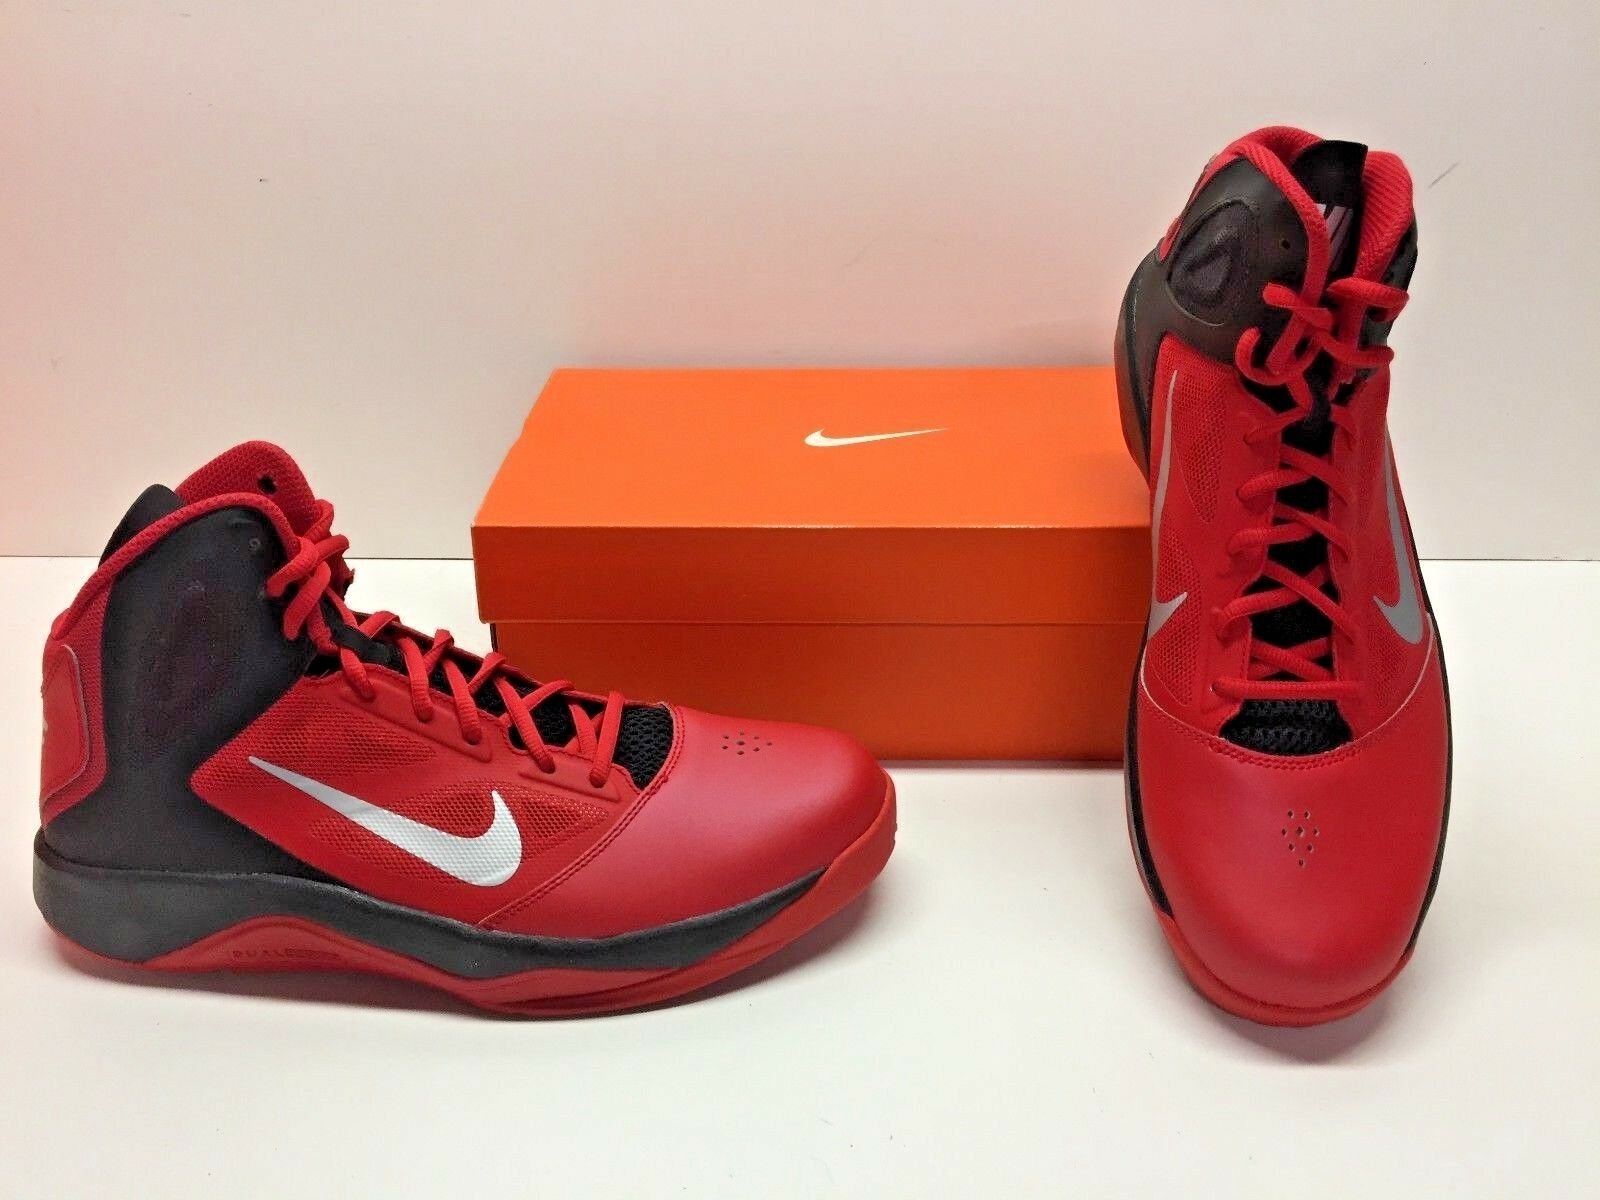 Nike Dual Fusion BB II Basketball Red Black High Top Sneakers Shoes Mens 10.5